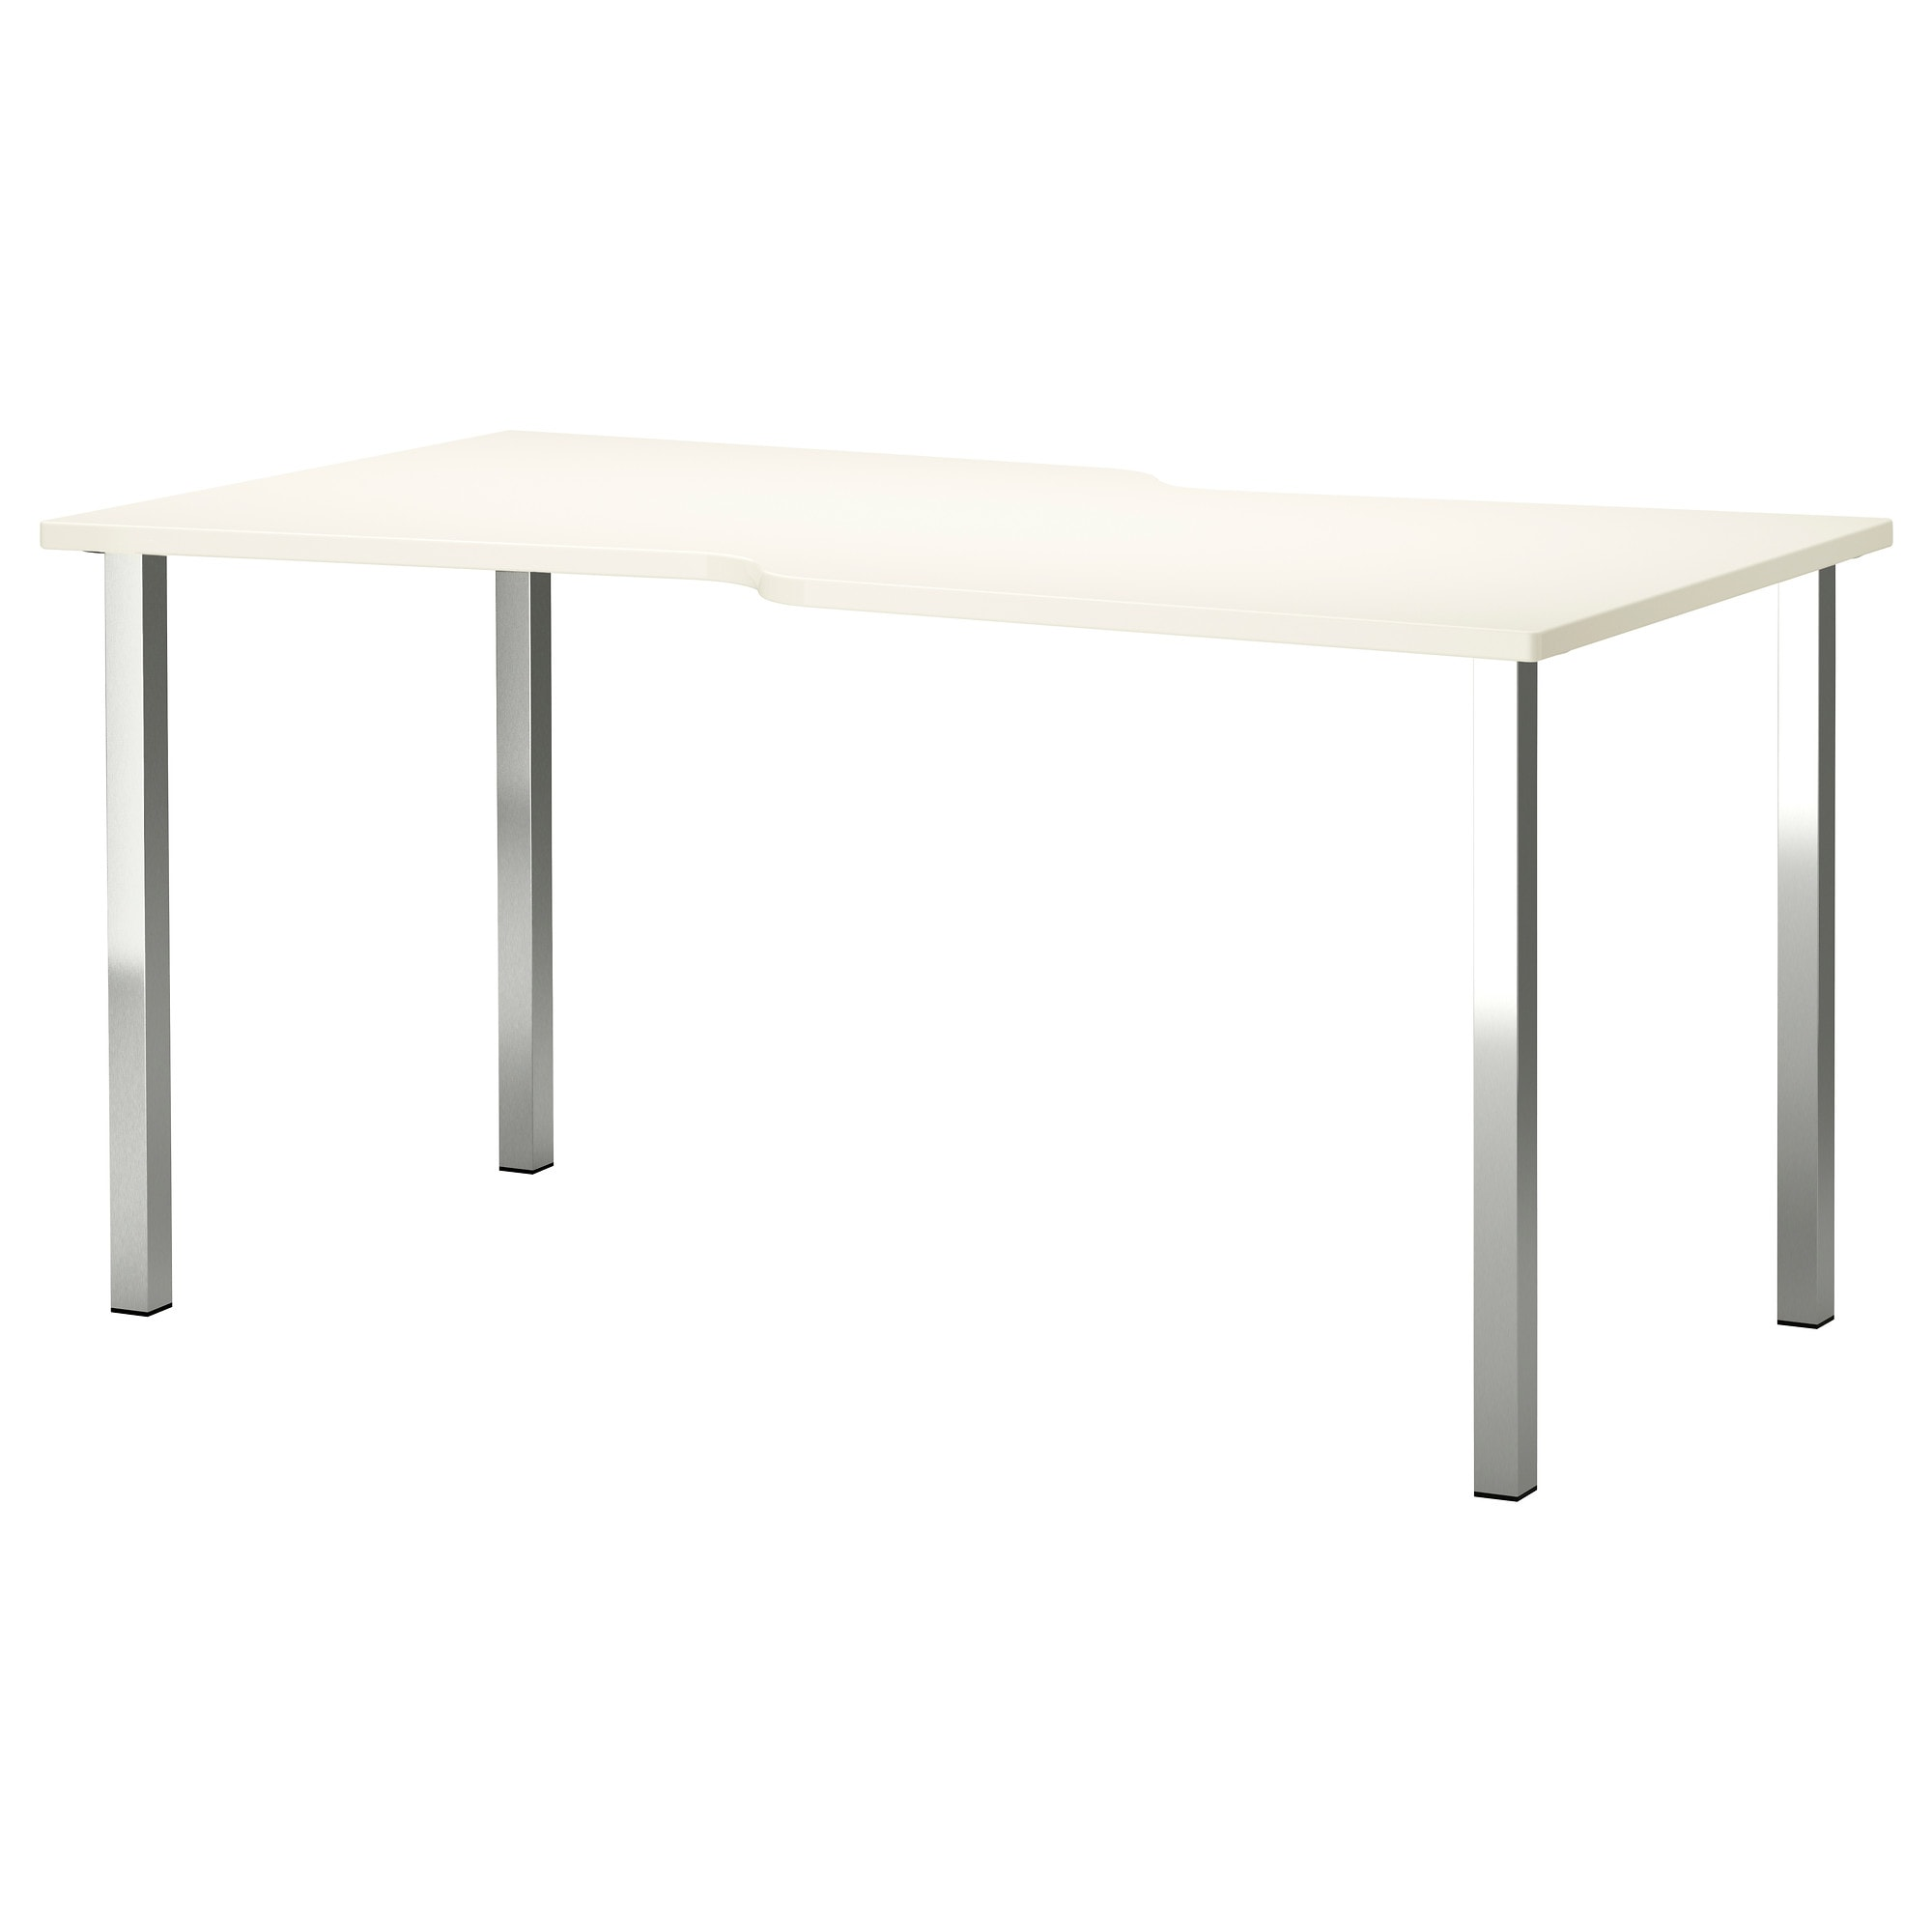 #7A7A51 Writing Desks IKEA with 2000x2000 px of Best Writing Desk Ikea 20002000 image @ avoidforclosure.info